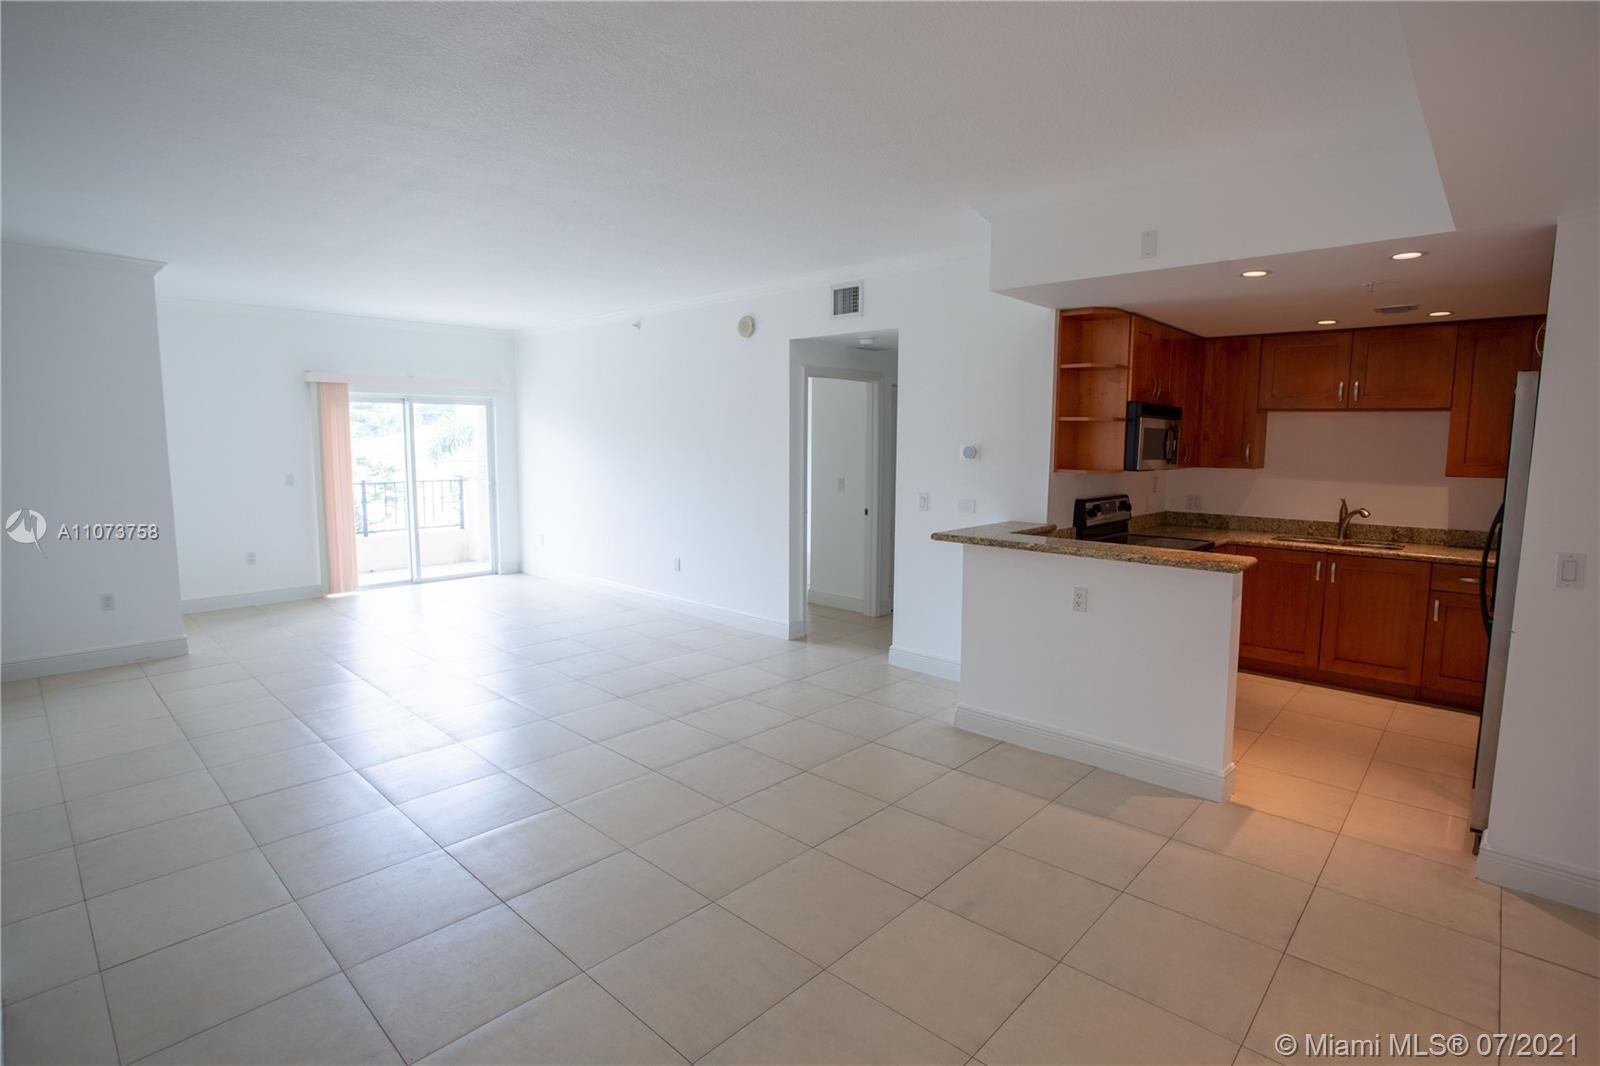 Photo of 20 Calabria Ave #201, Coral Gables, FL 33134 (MLS # A11073758)